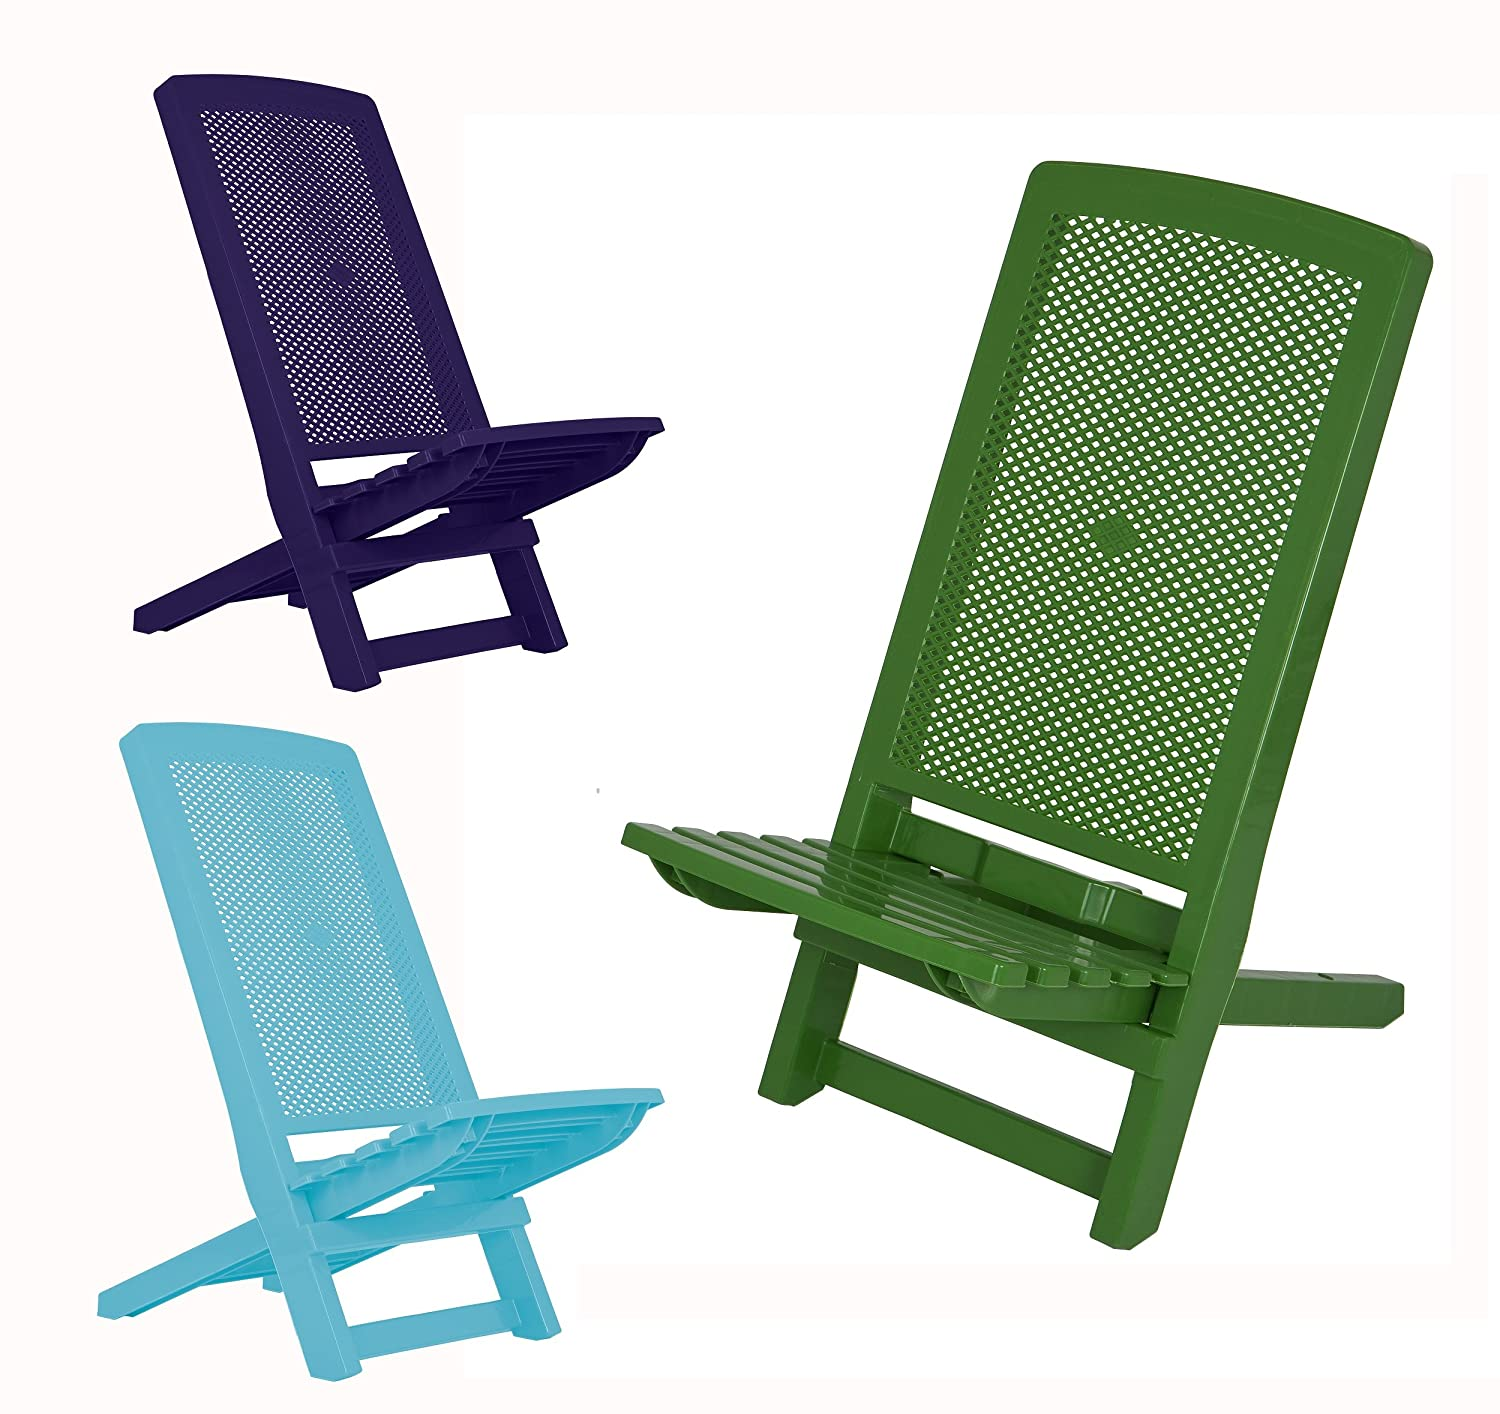 Folding Deck Chair Blue Amazon Garden & Outdoors